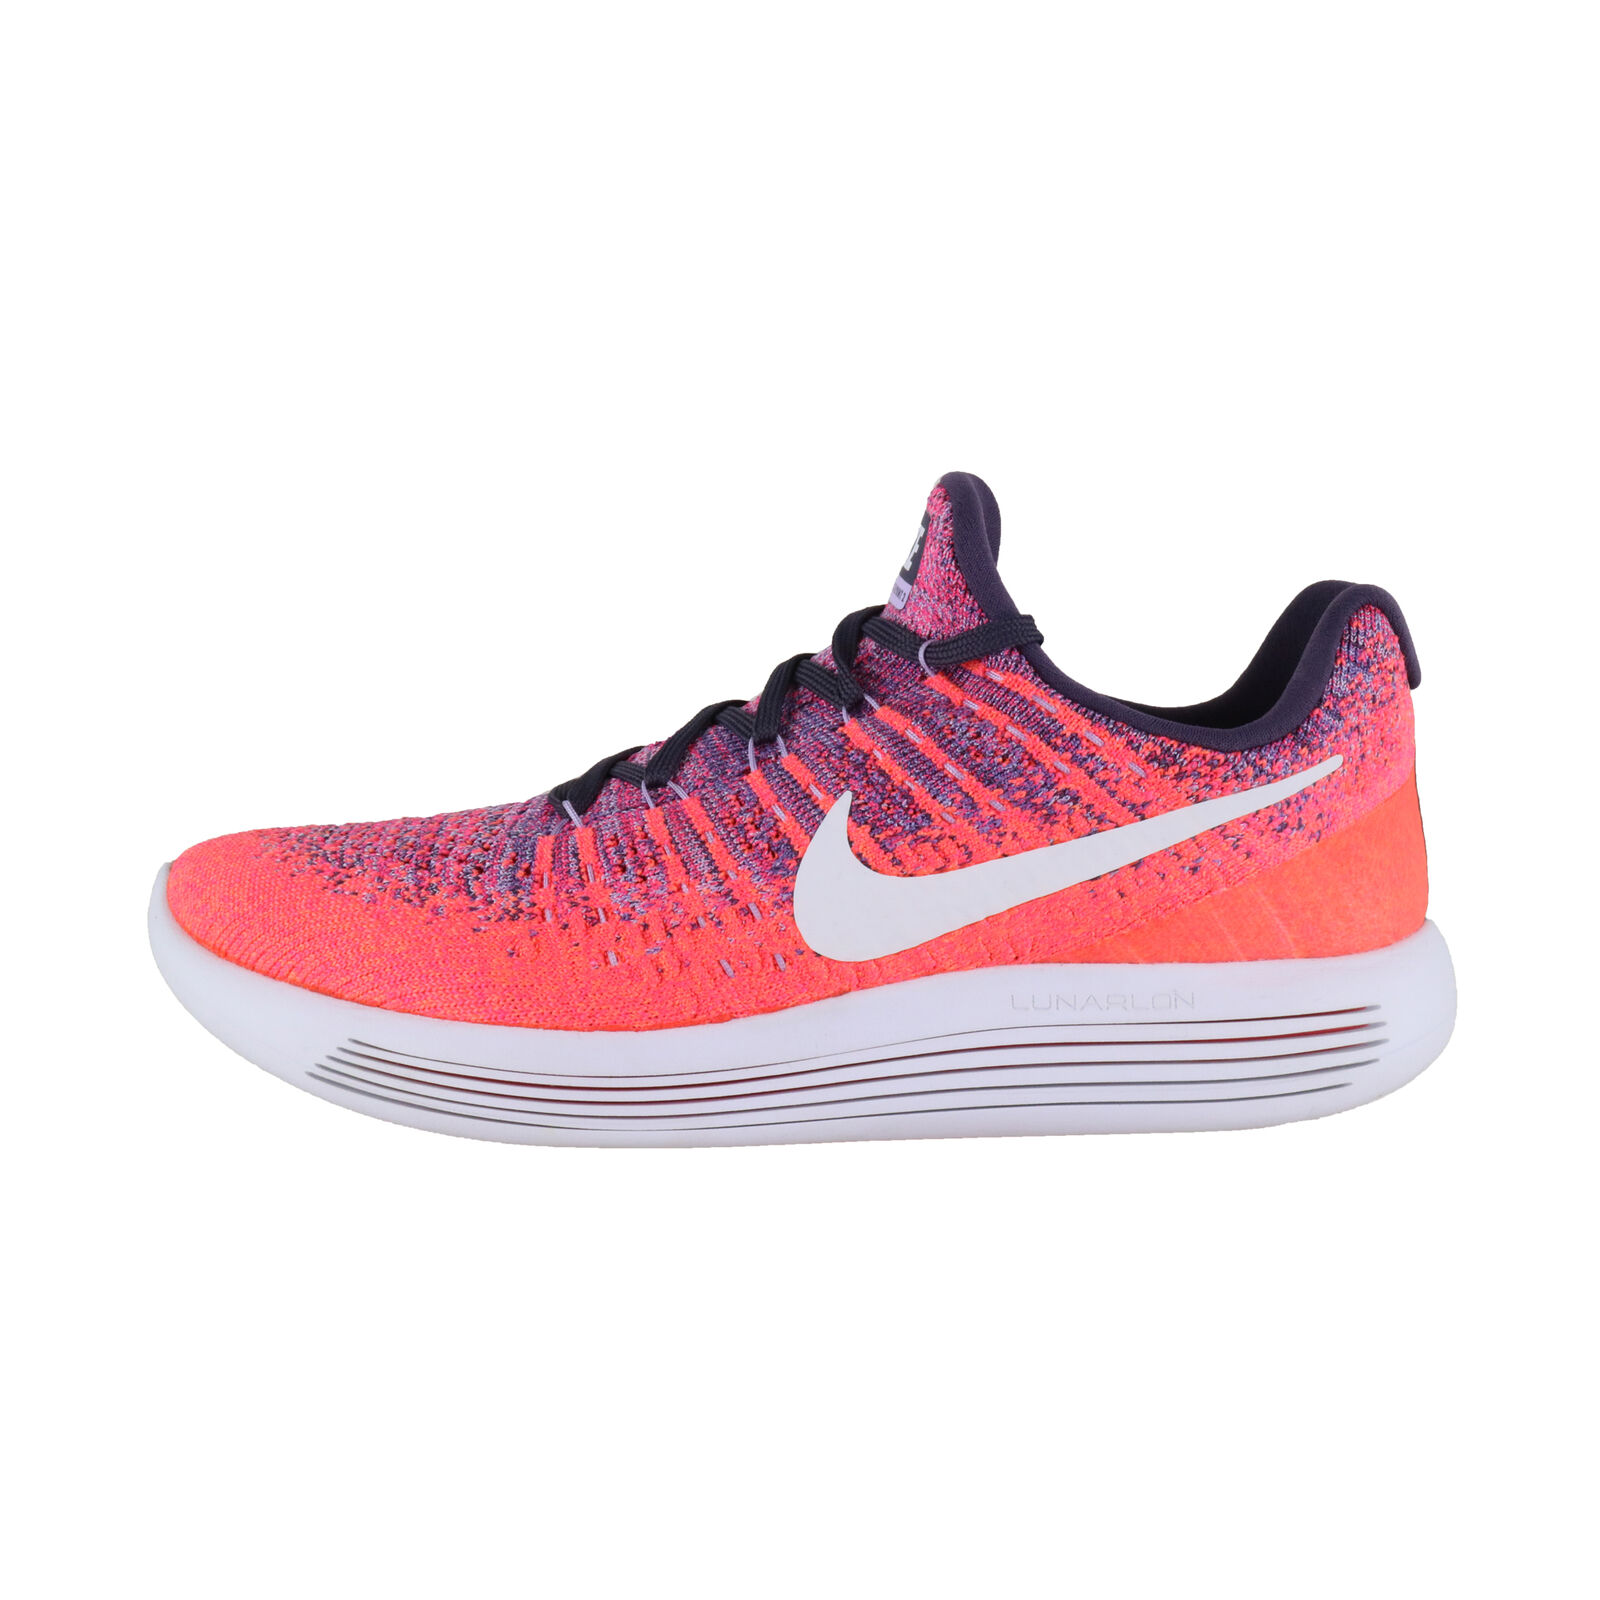 low priced e2893 c97f1 ... coupon code for nike lunarepic low flyknit 2 mujer 863780 500 azul rojo  863780 500 mujer